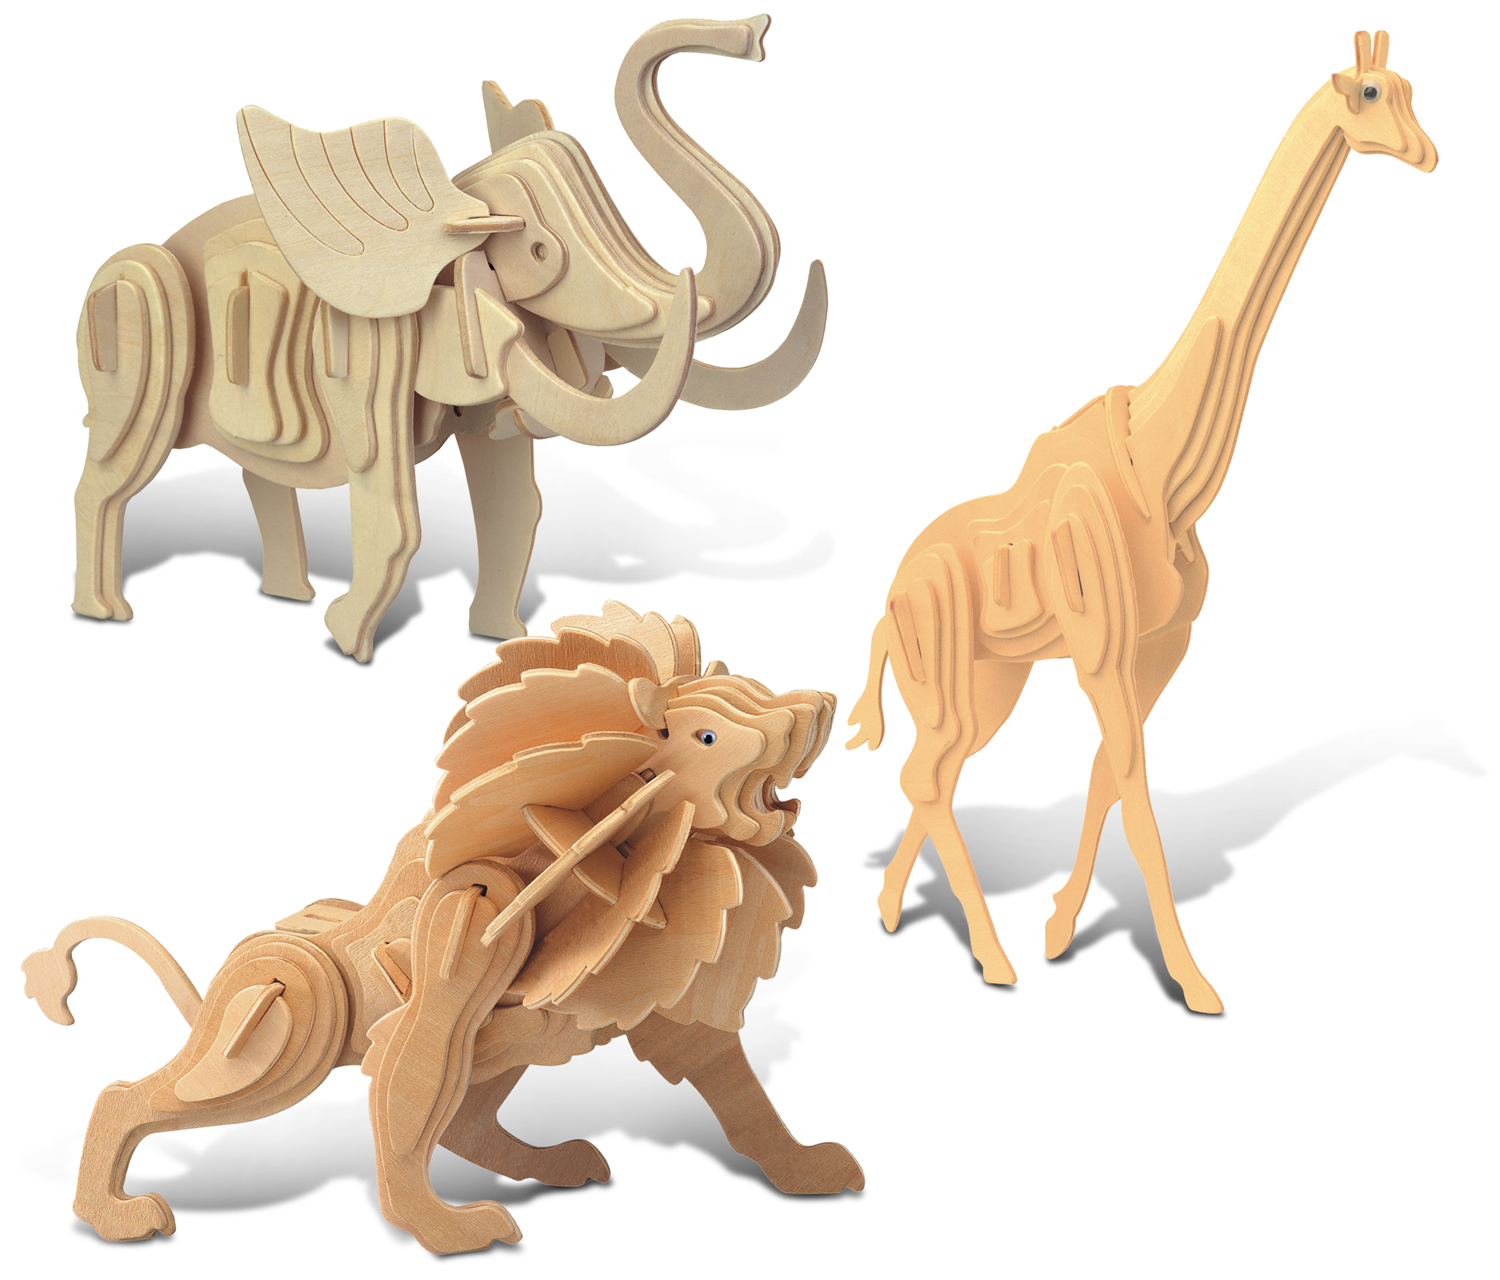 Puzzled Giraffe, Elephant and Lion Wooden 3D Puzzle Construction Kit by Puzzled Inc